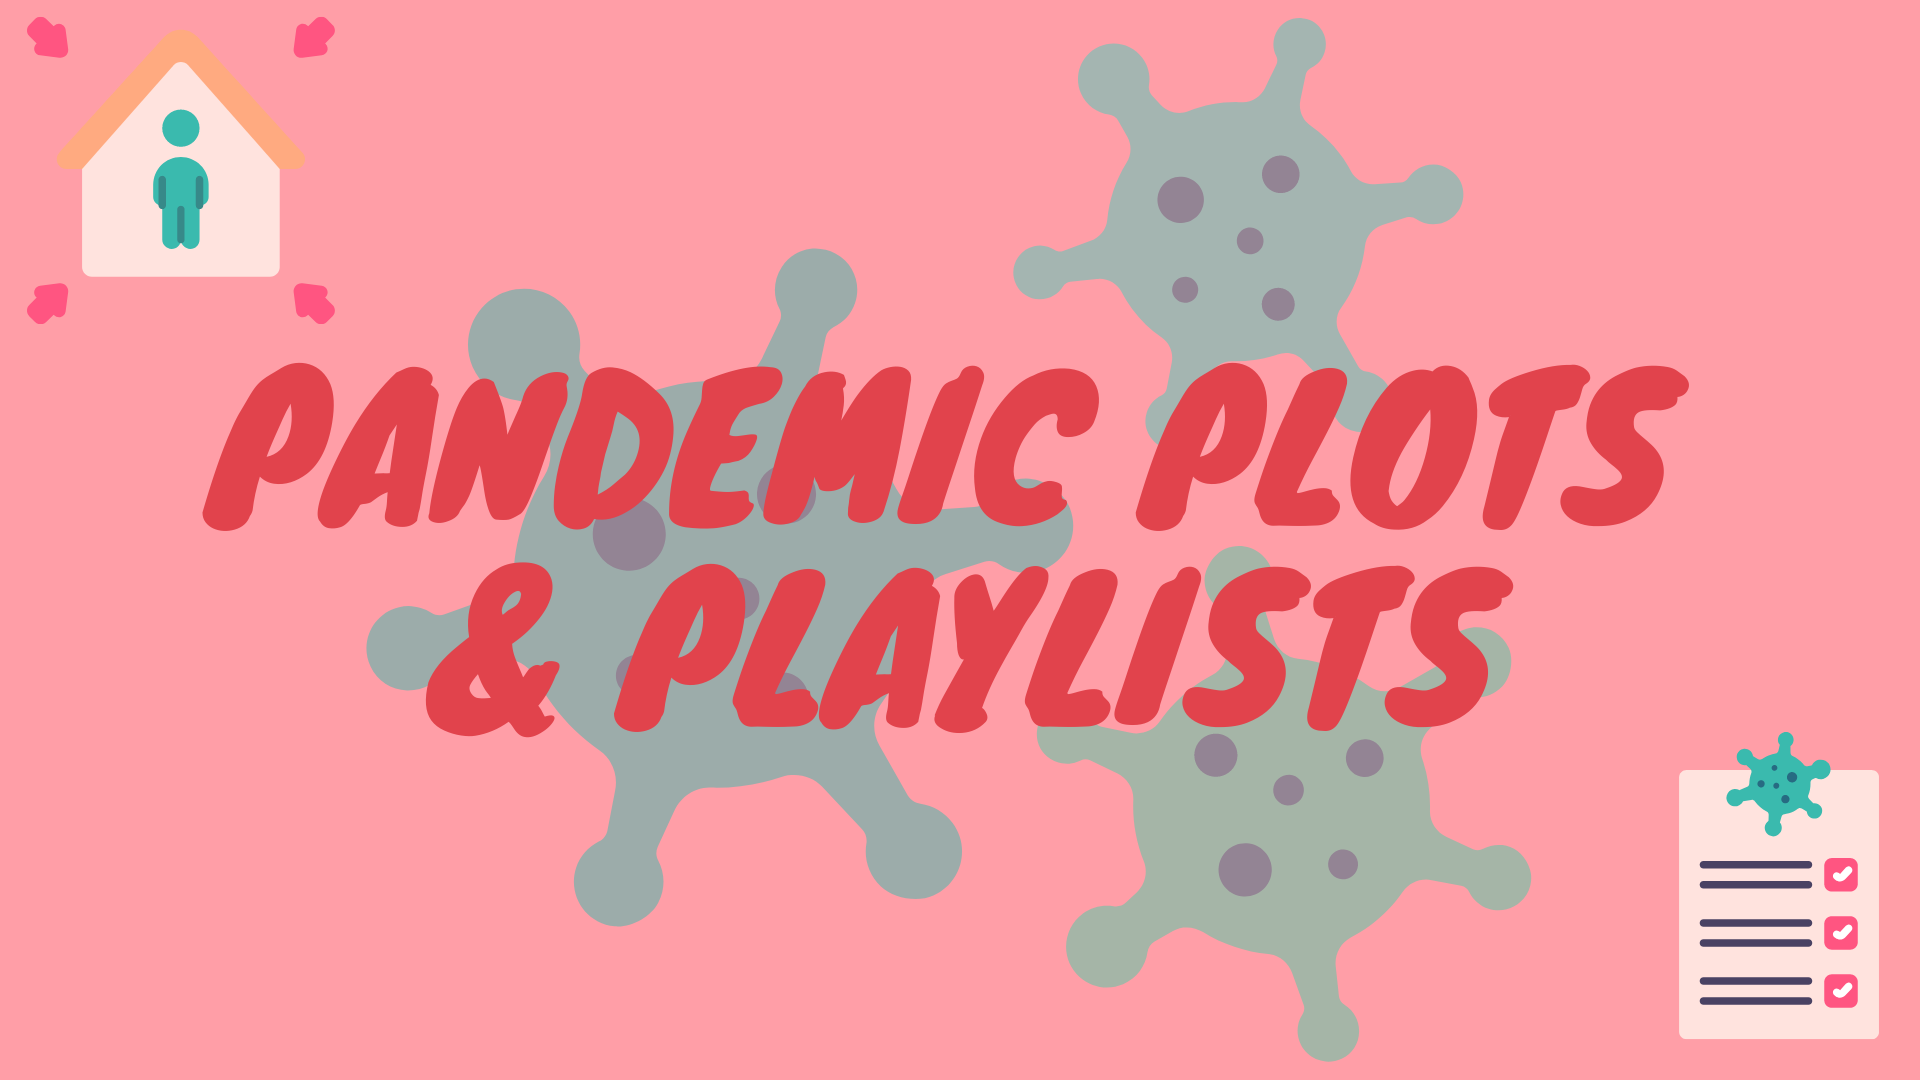 Pandemic plots and playlists guide